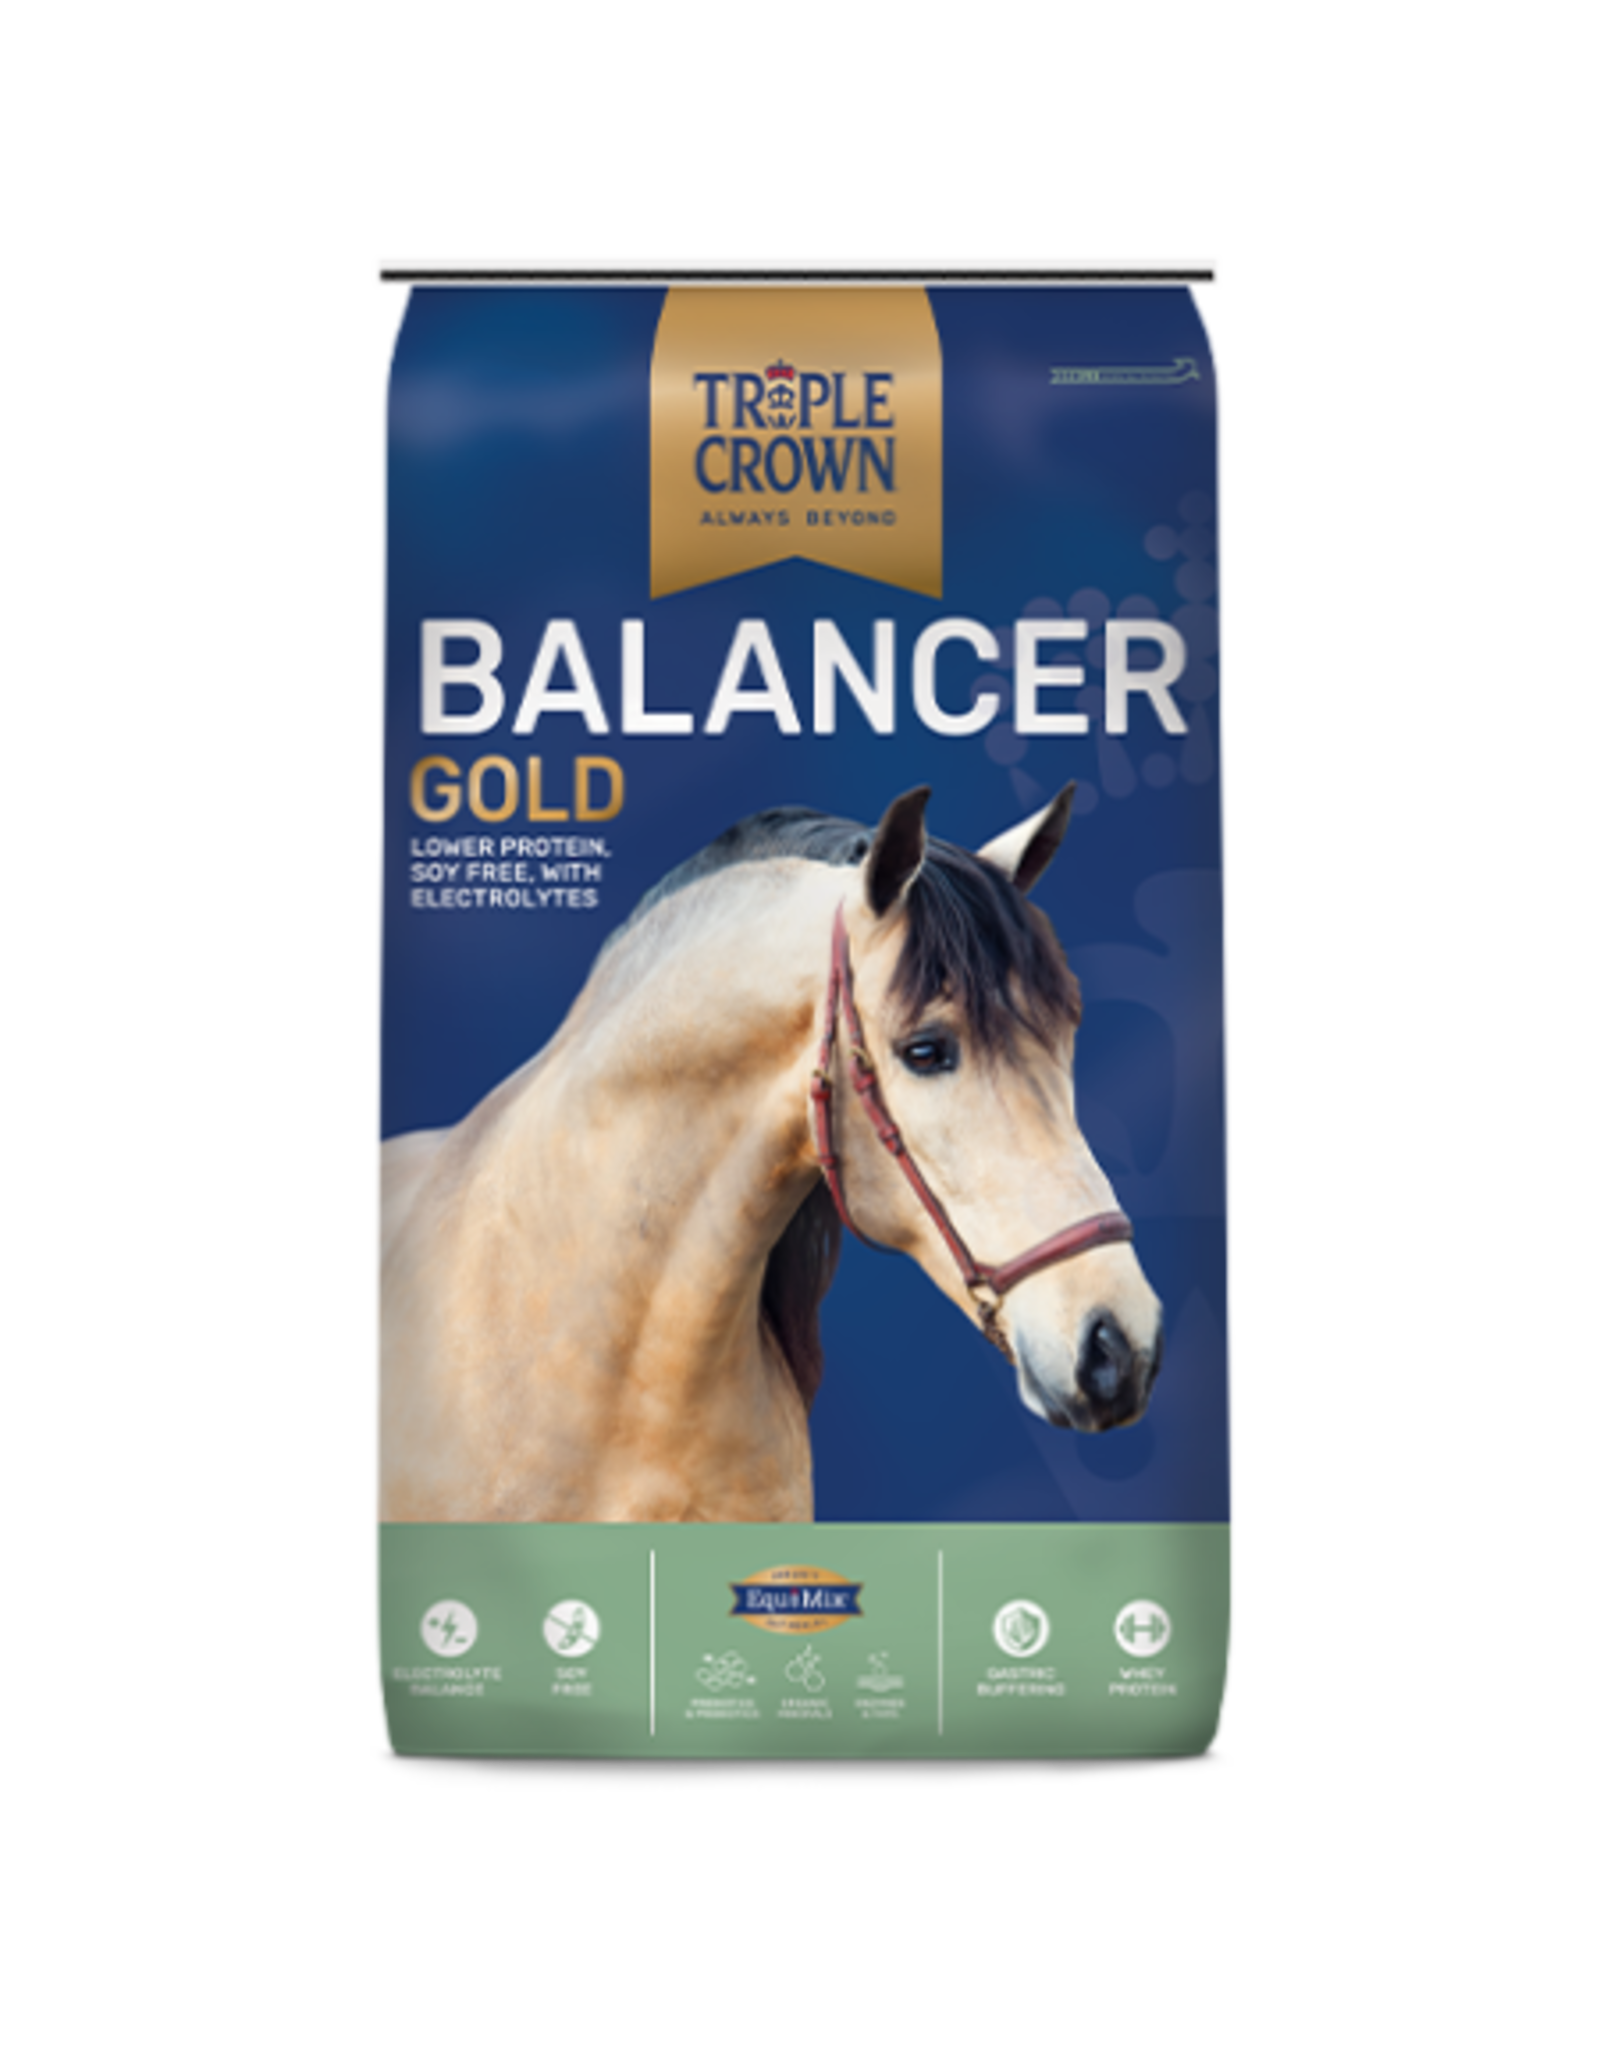 Triple Crown Triple Crown Balancer Gold 13.5/4.5/15